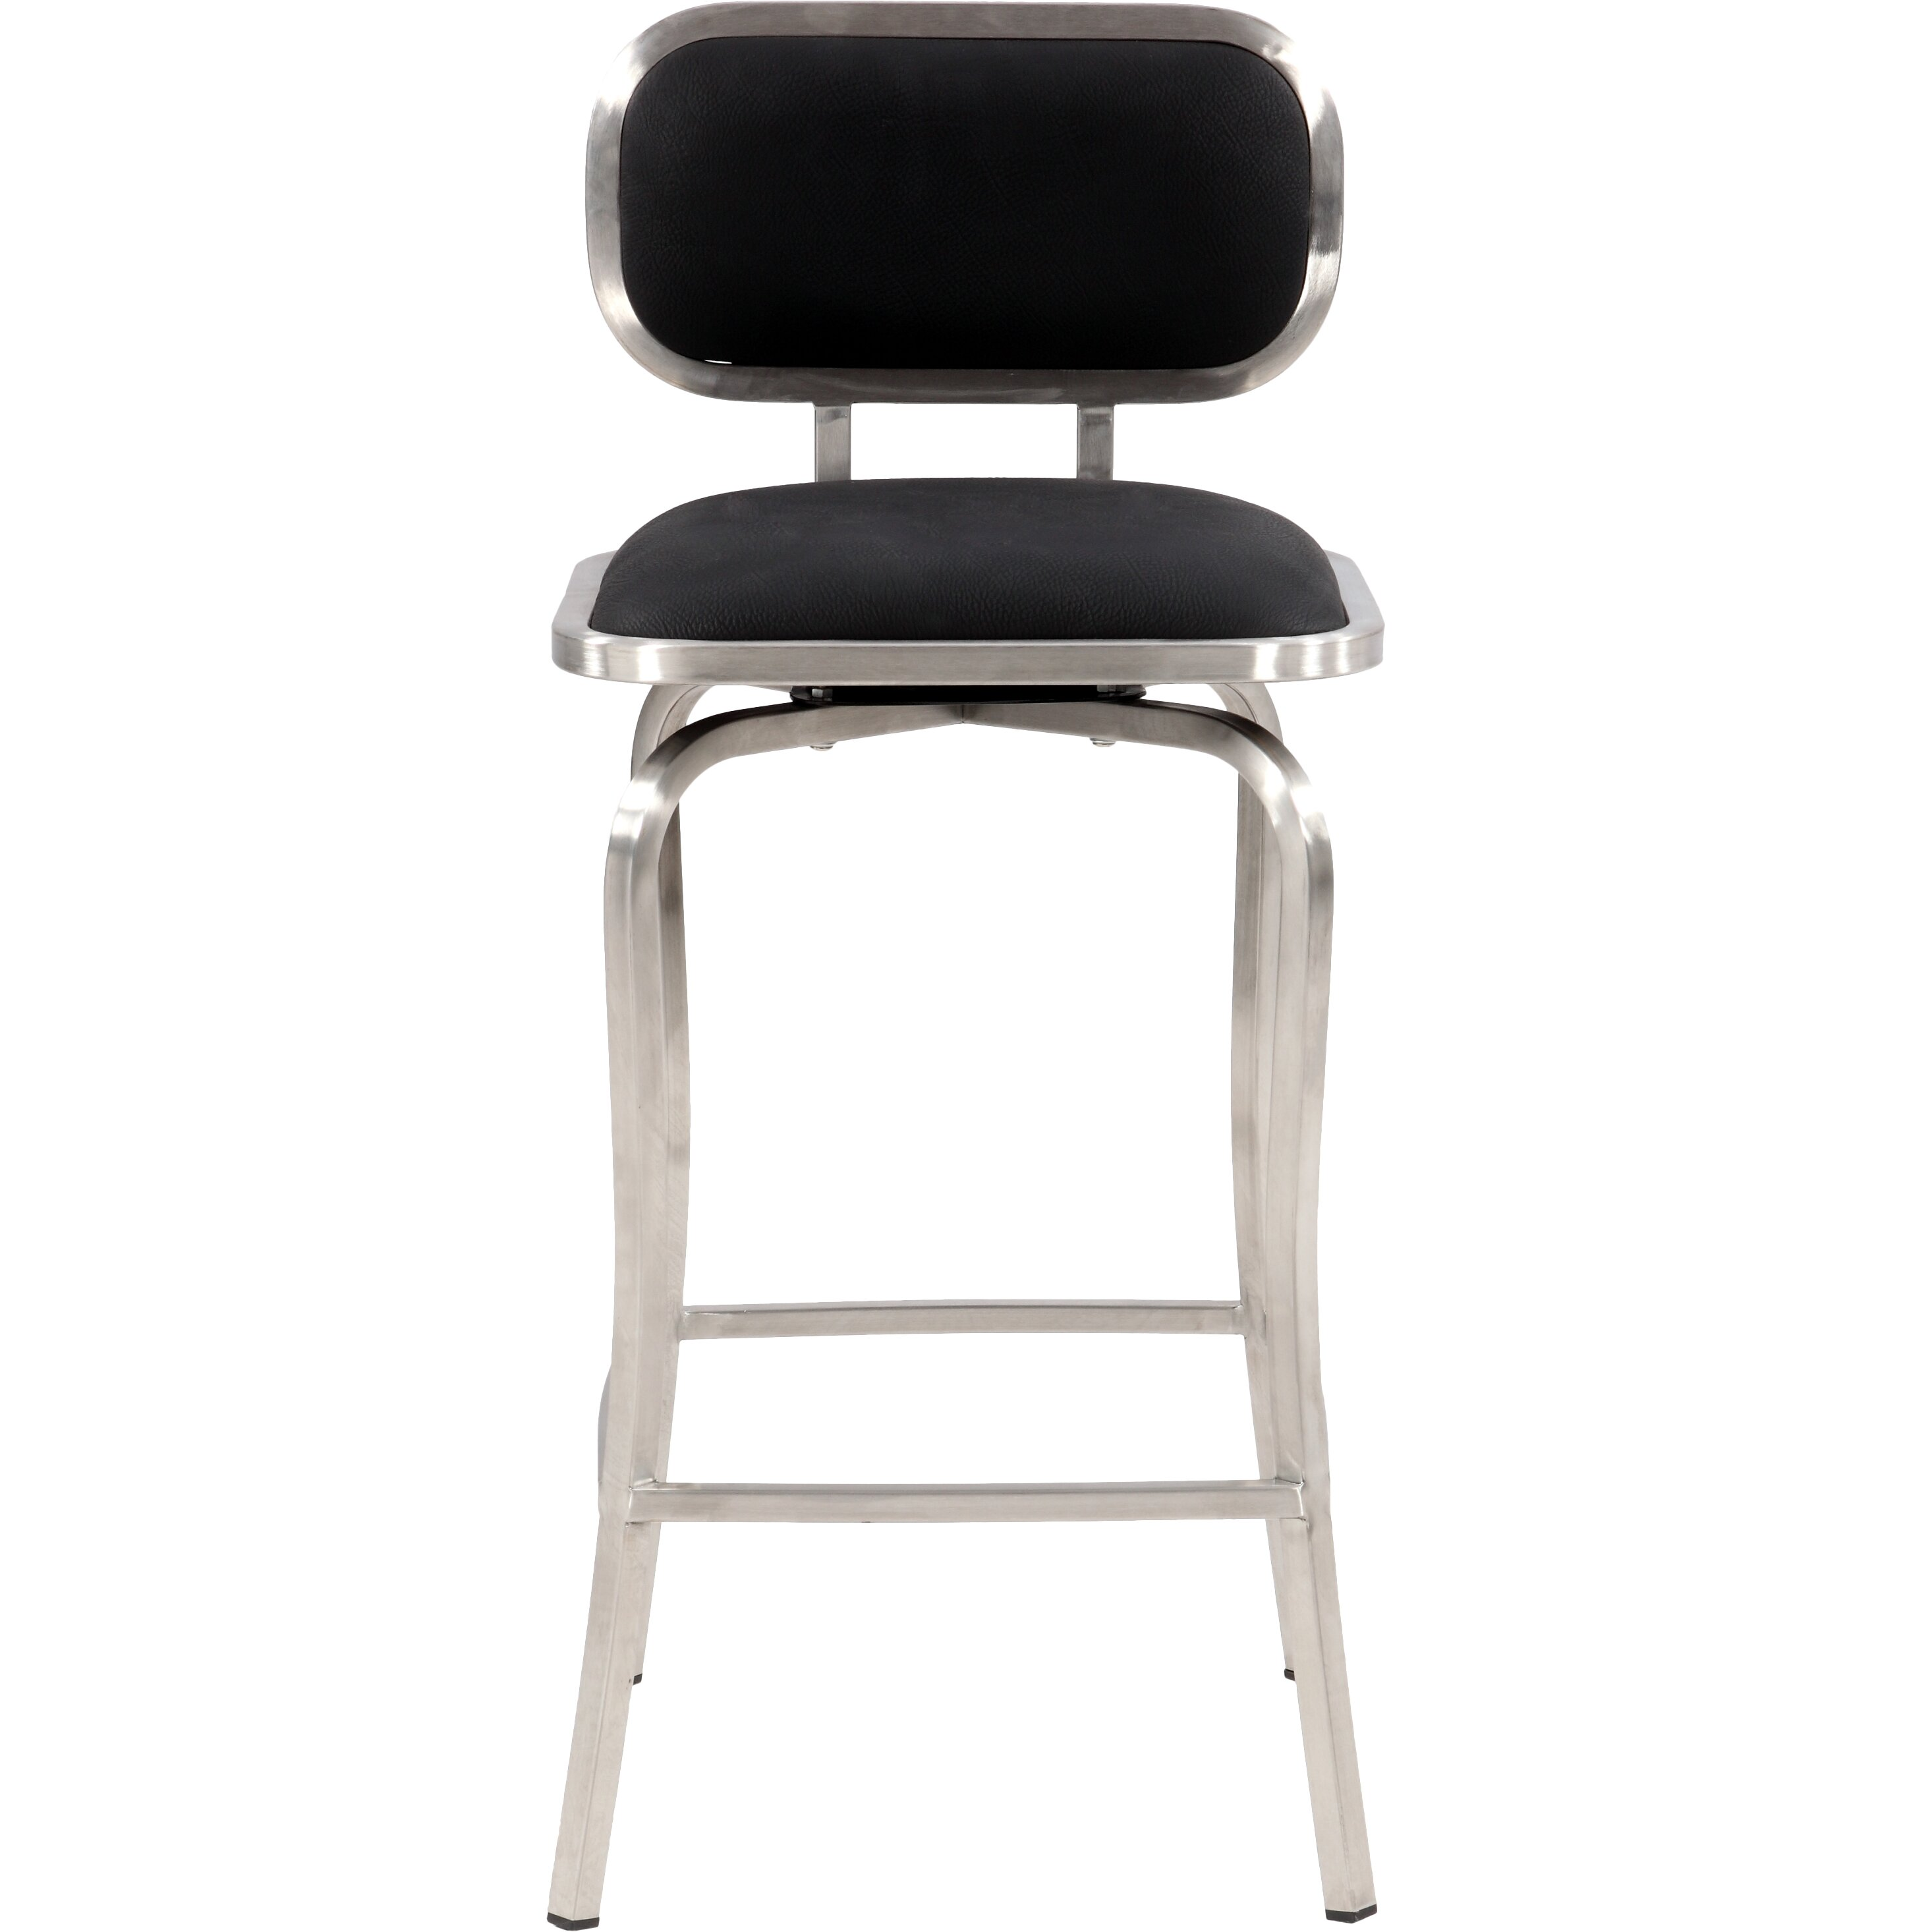 Chintaly Modern 2598quot Swivel Bar Stool amp Reviews Wayfair : Chintaly Imports Modern 2598 Swivel Bar Stool from www.wayfair.com size 2932 x 2932 jpeg 383kB